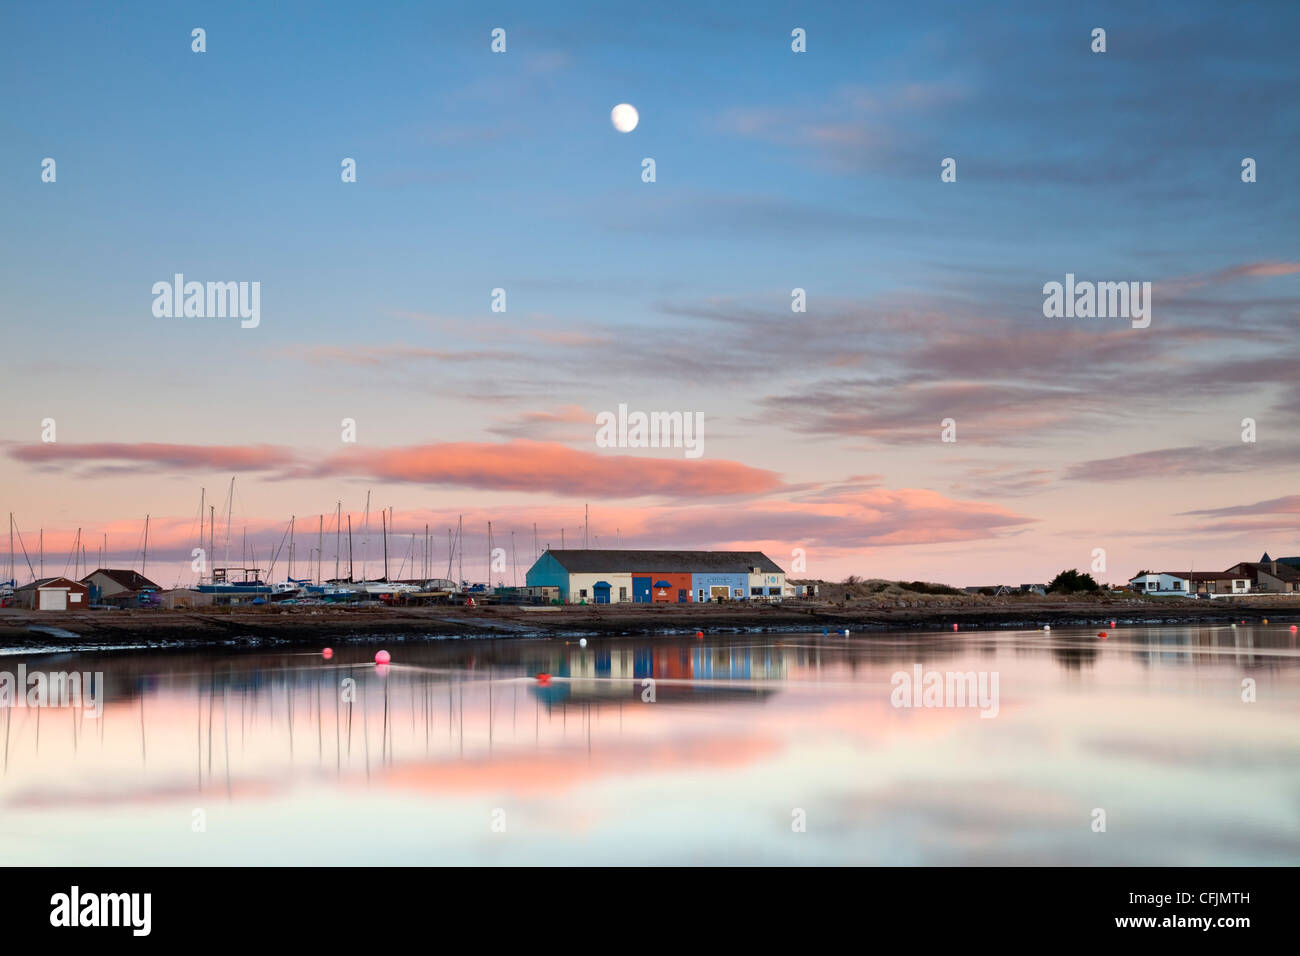 Moon rising over the Royal Findhorn Yacht Club, on the Moray Firth, Scotland. - Stock Image